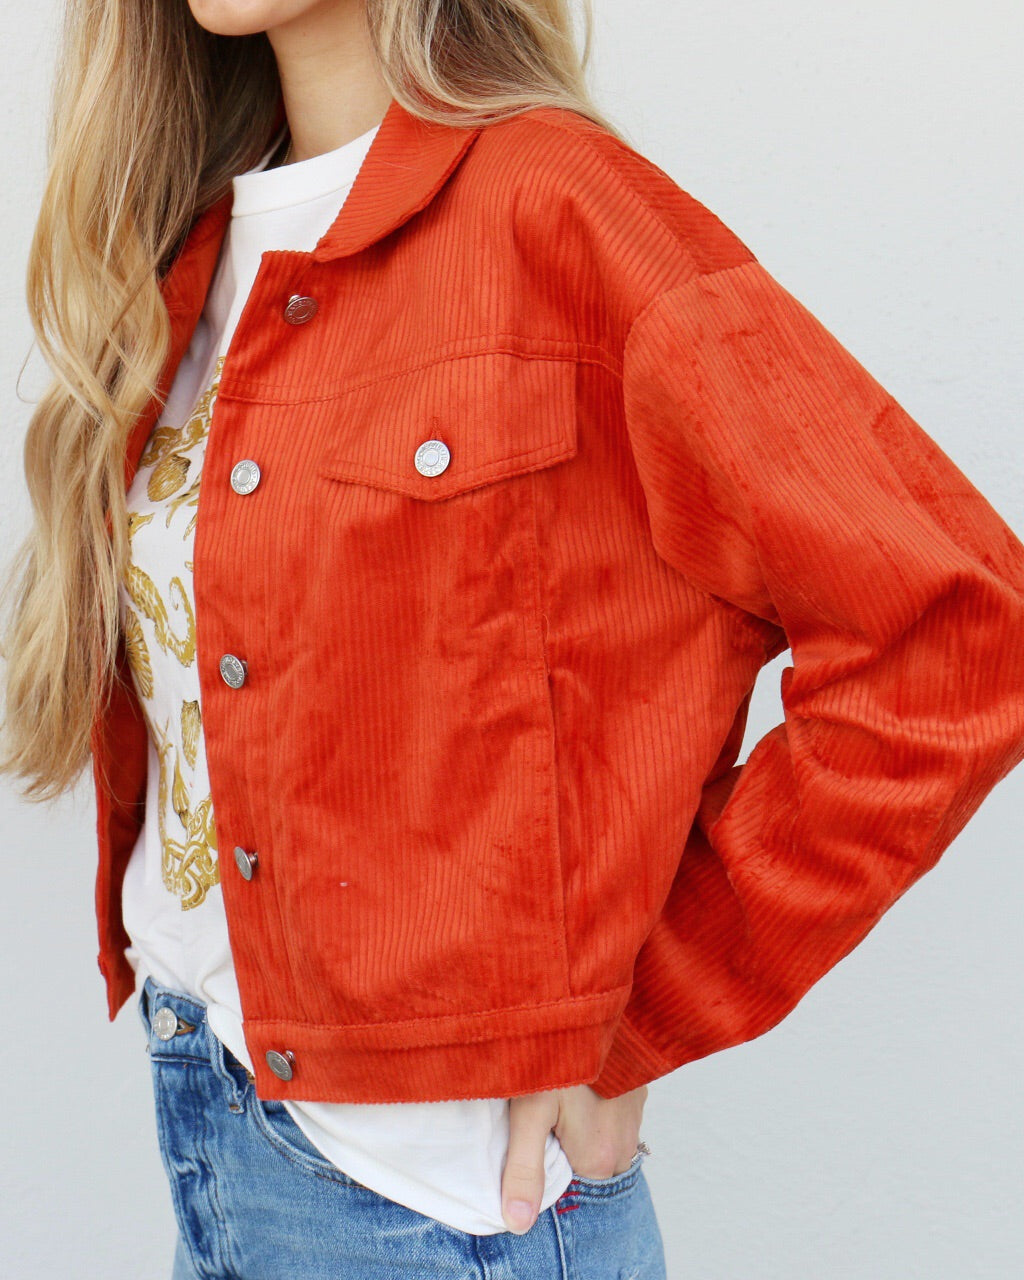 Starstruck Jacket in Rust